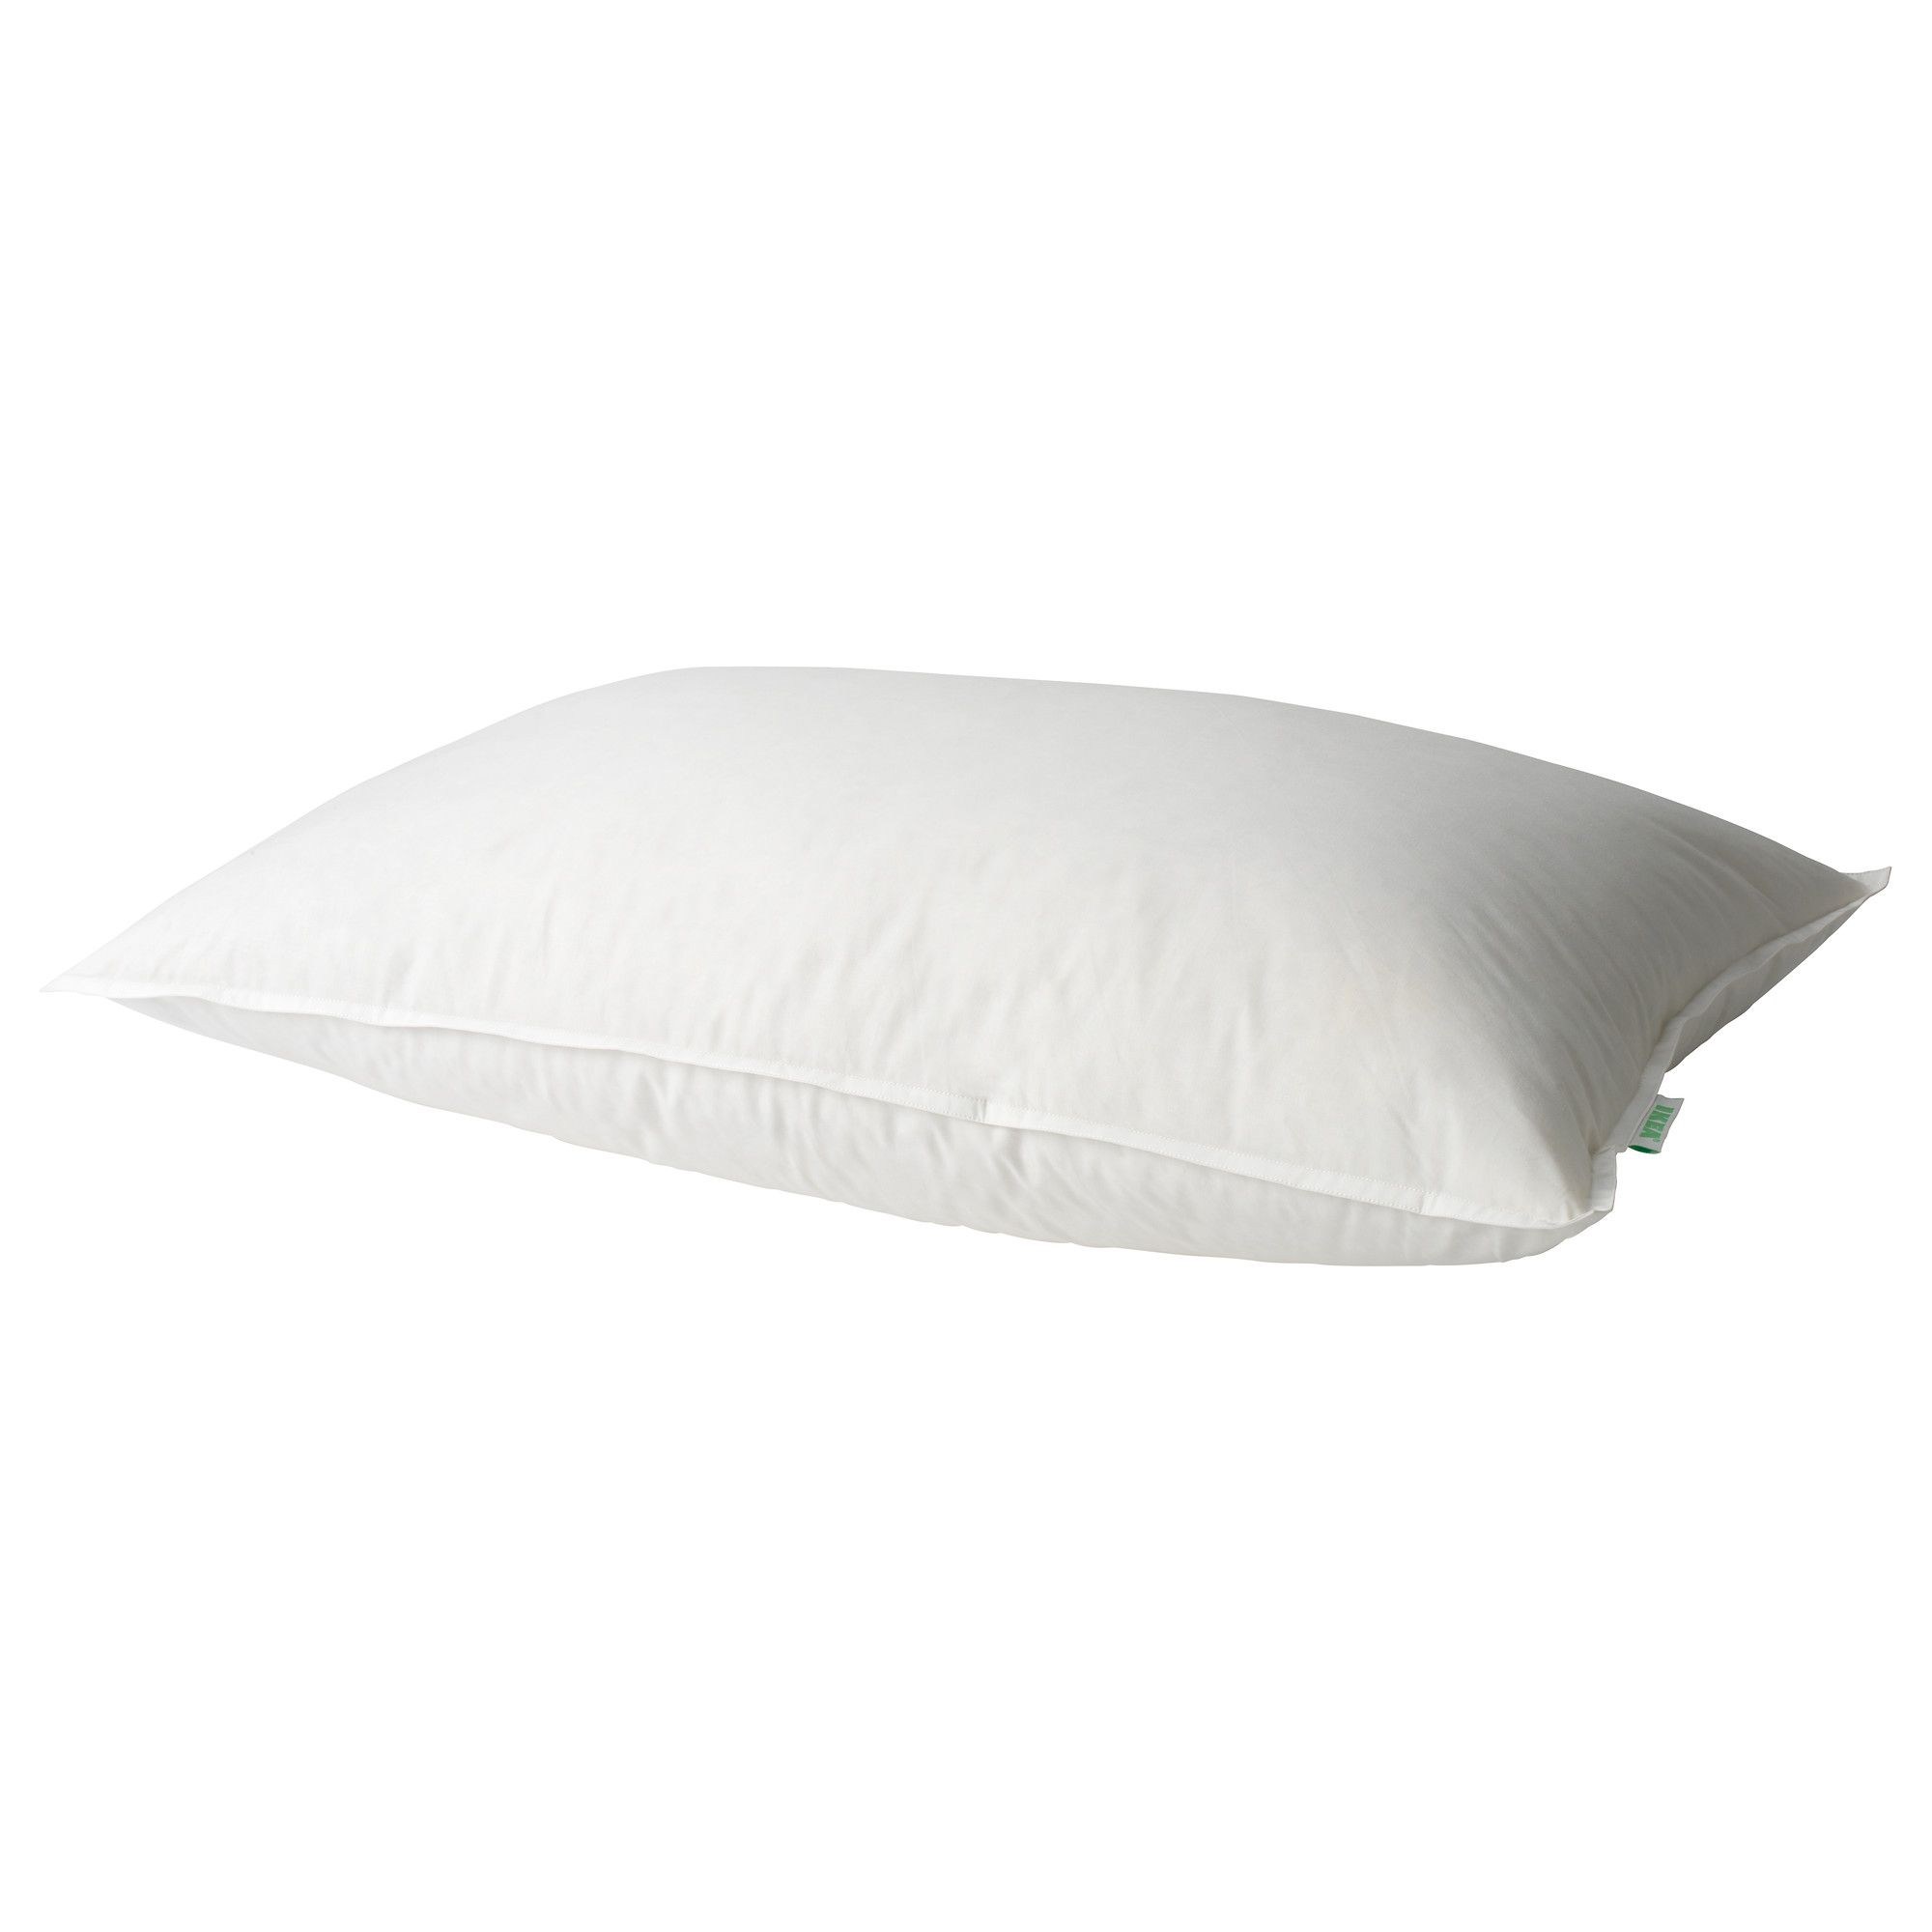 Ikea Gosa Pinje Home Furniture Store - Modern Furnishings & Décor | Goose Feather Pillows, Pillows, Feather Pillows